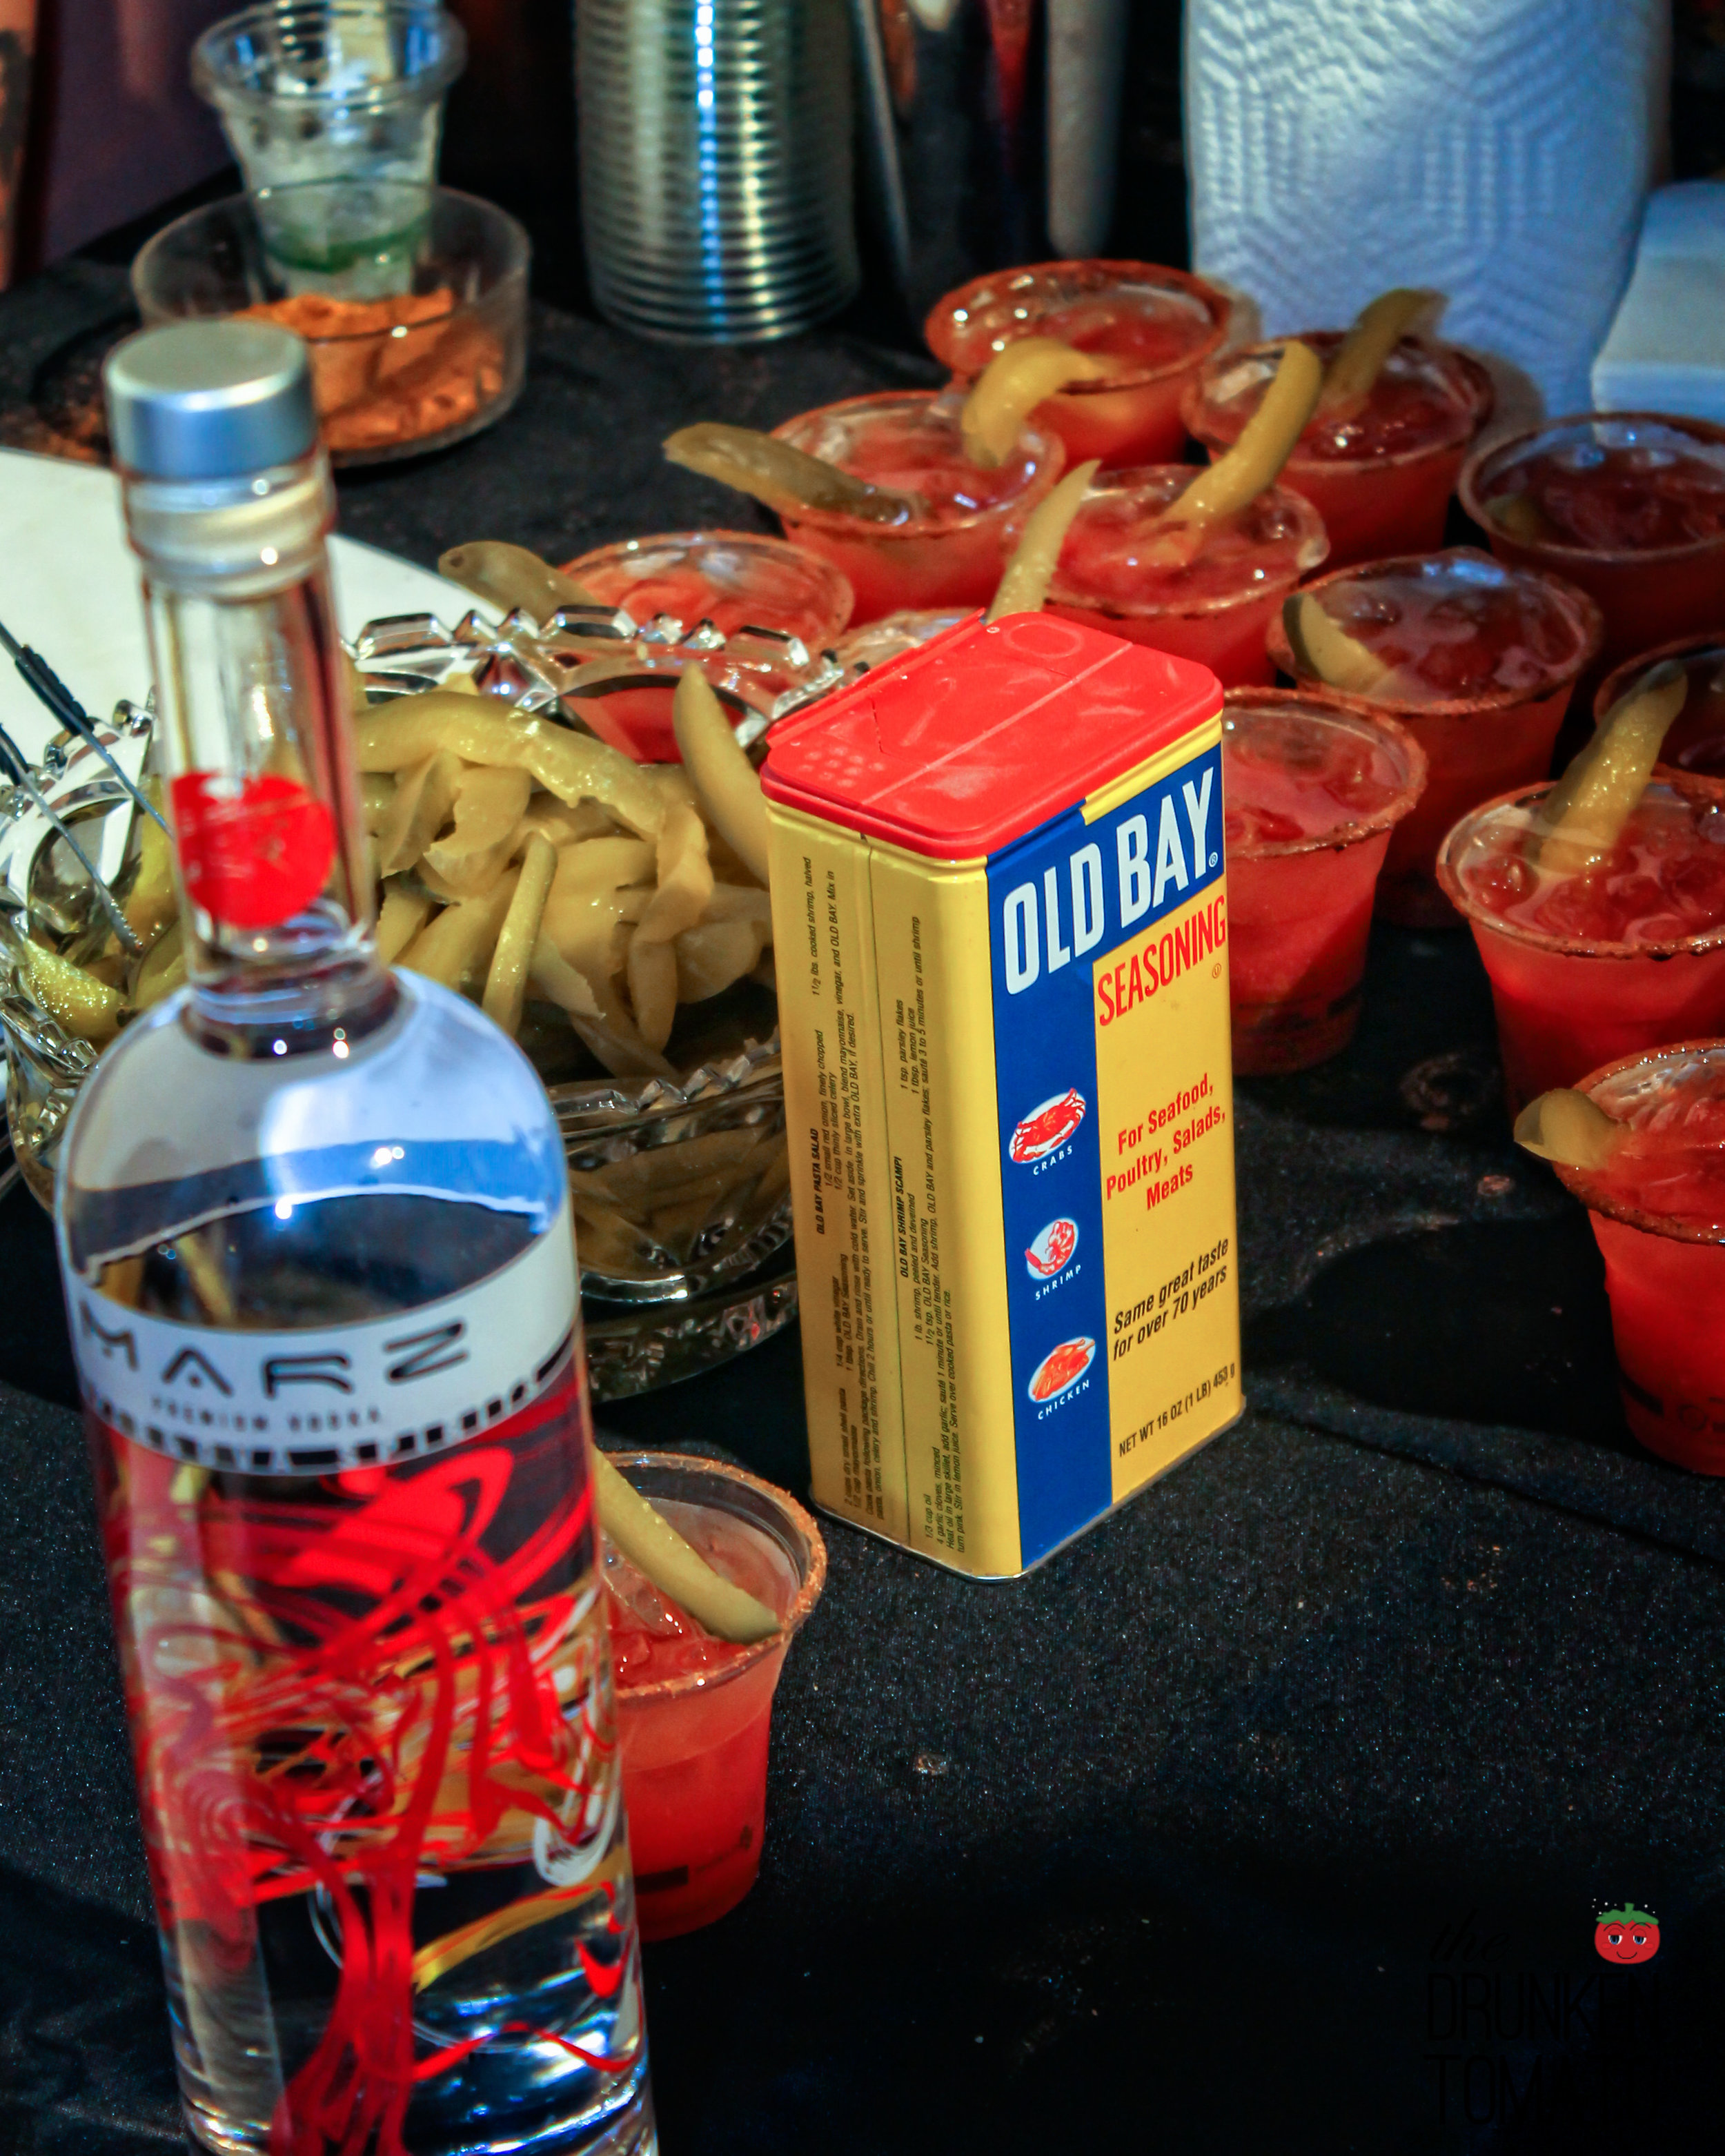 Elixir SF Bloody Mary Fest